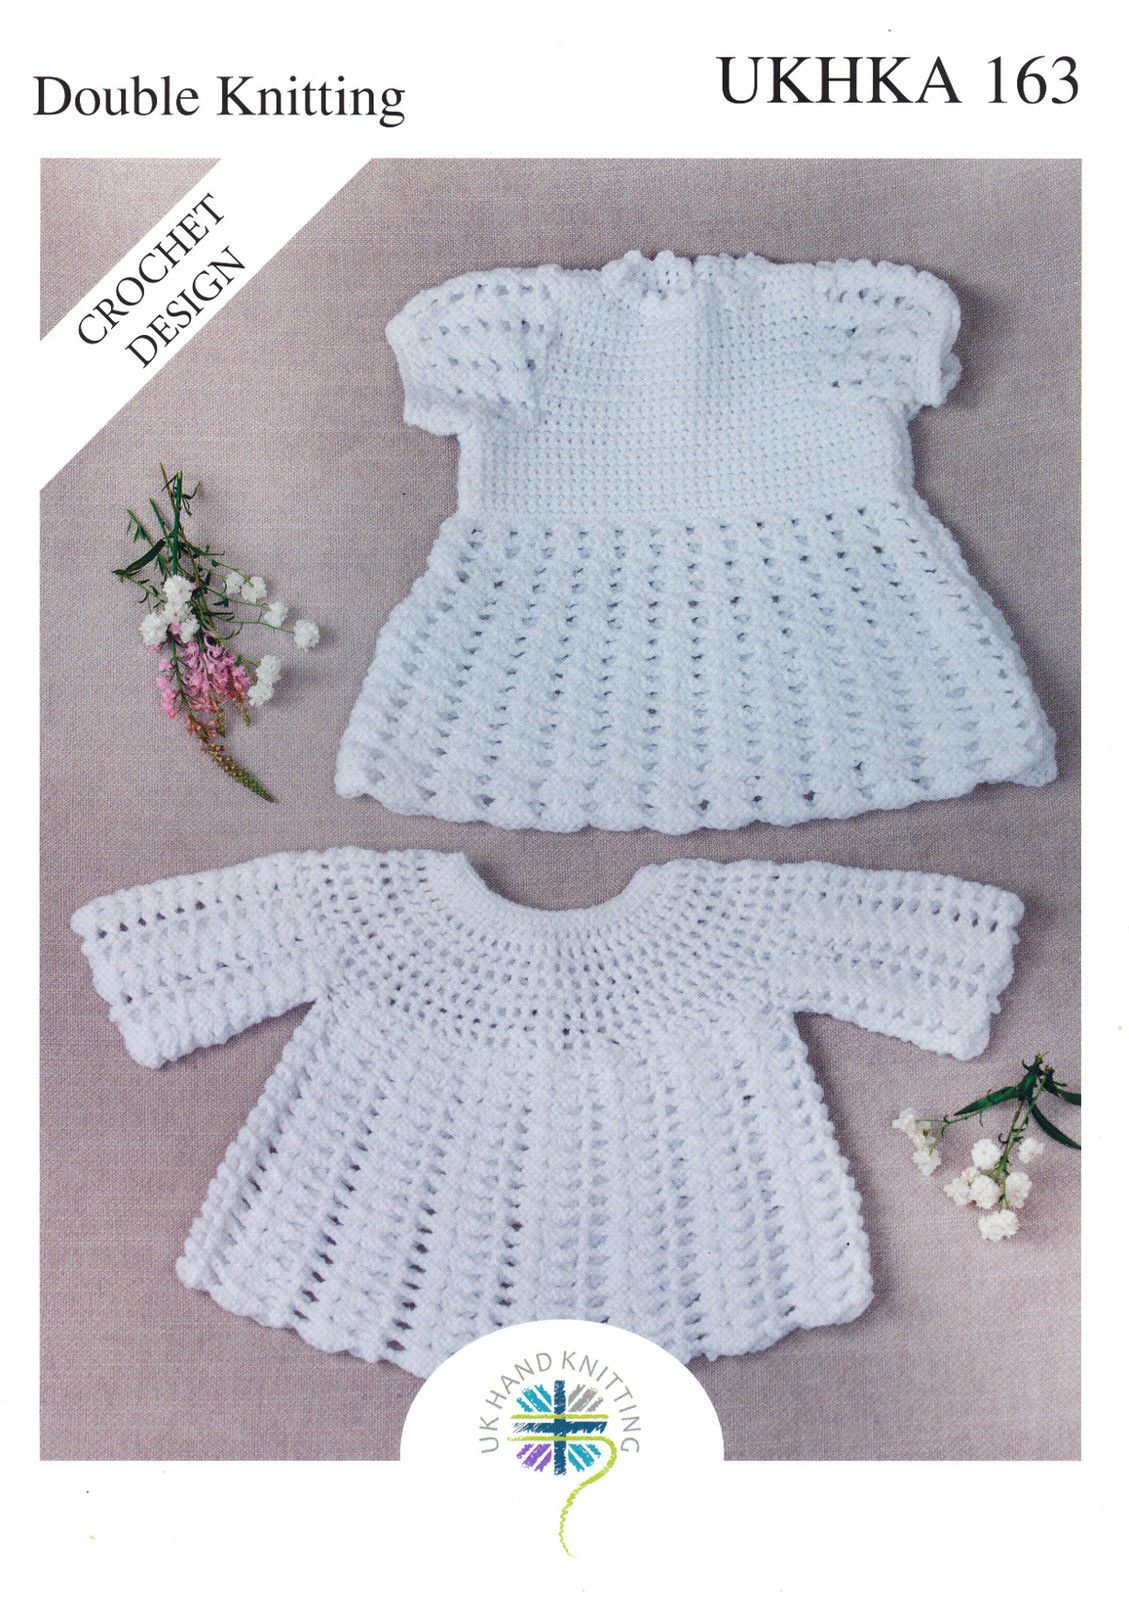 Knitting Pattern Angel Top : Crochet Pattern for Crochet Dress & Angel Top 19- 21 BHKC ...